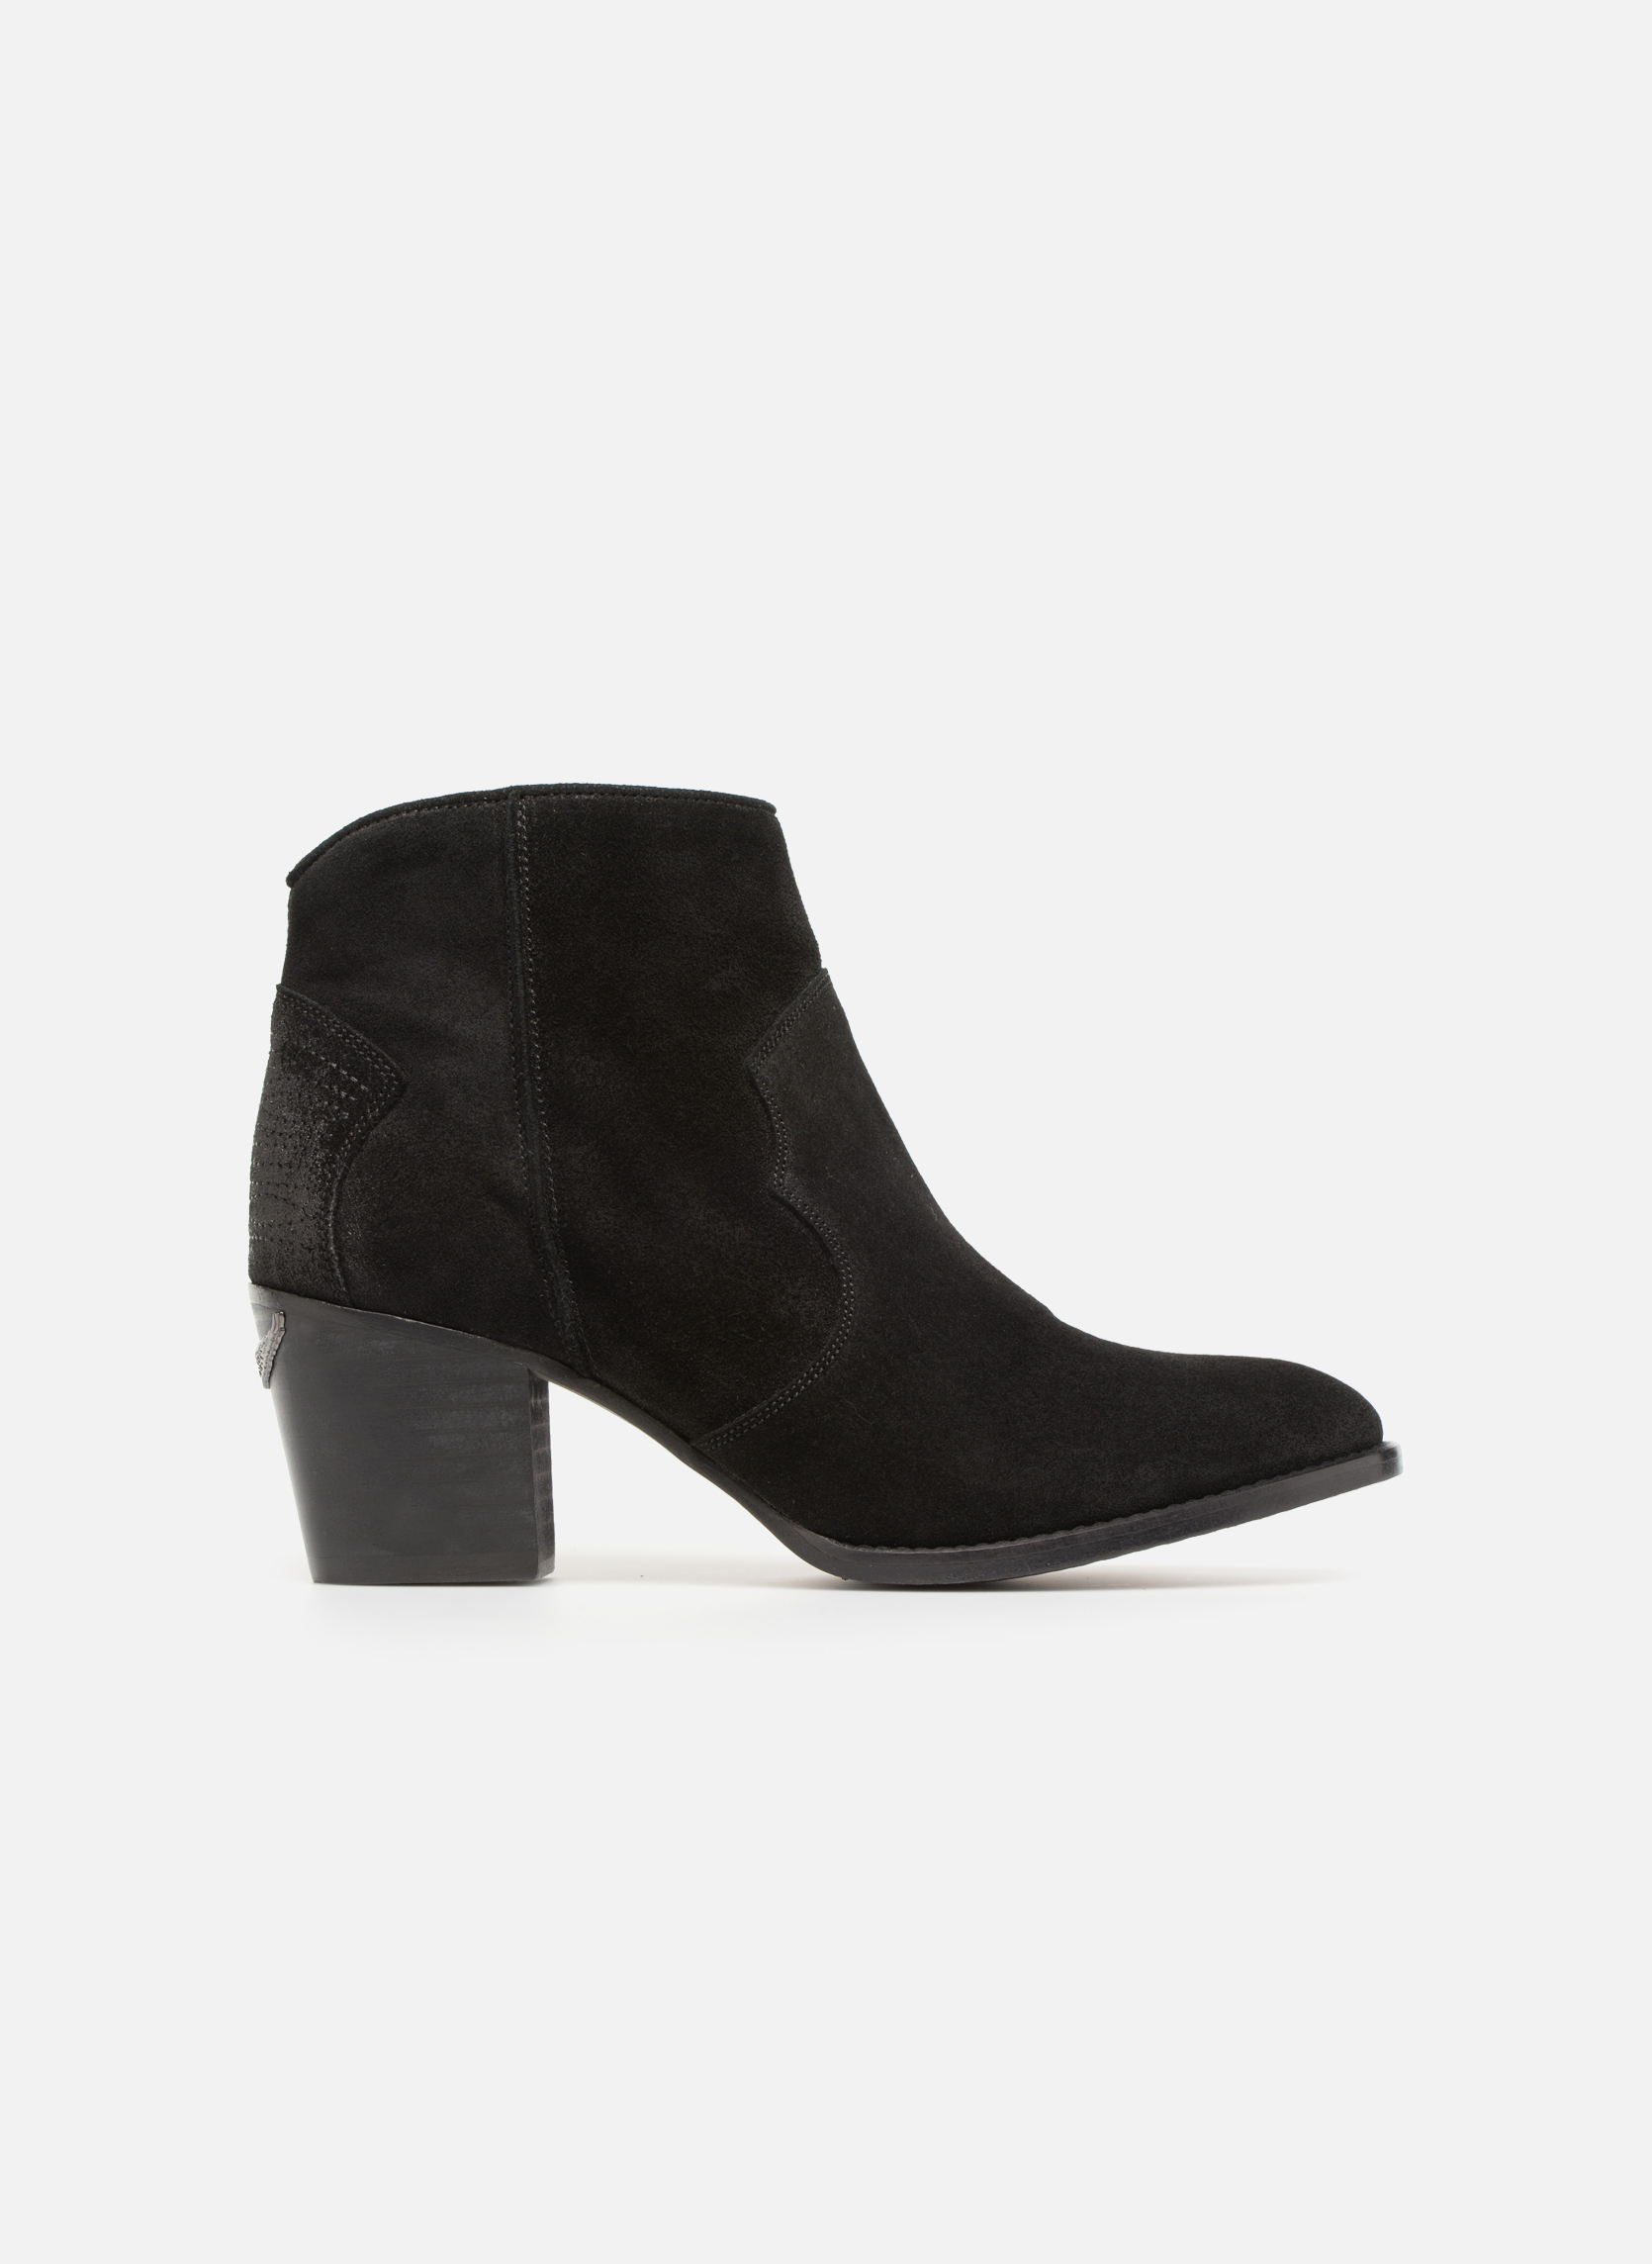 check out 69955 717fa Zadig   Voltaire Molly Suede